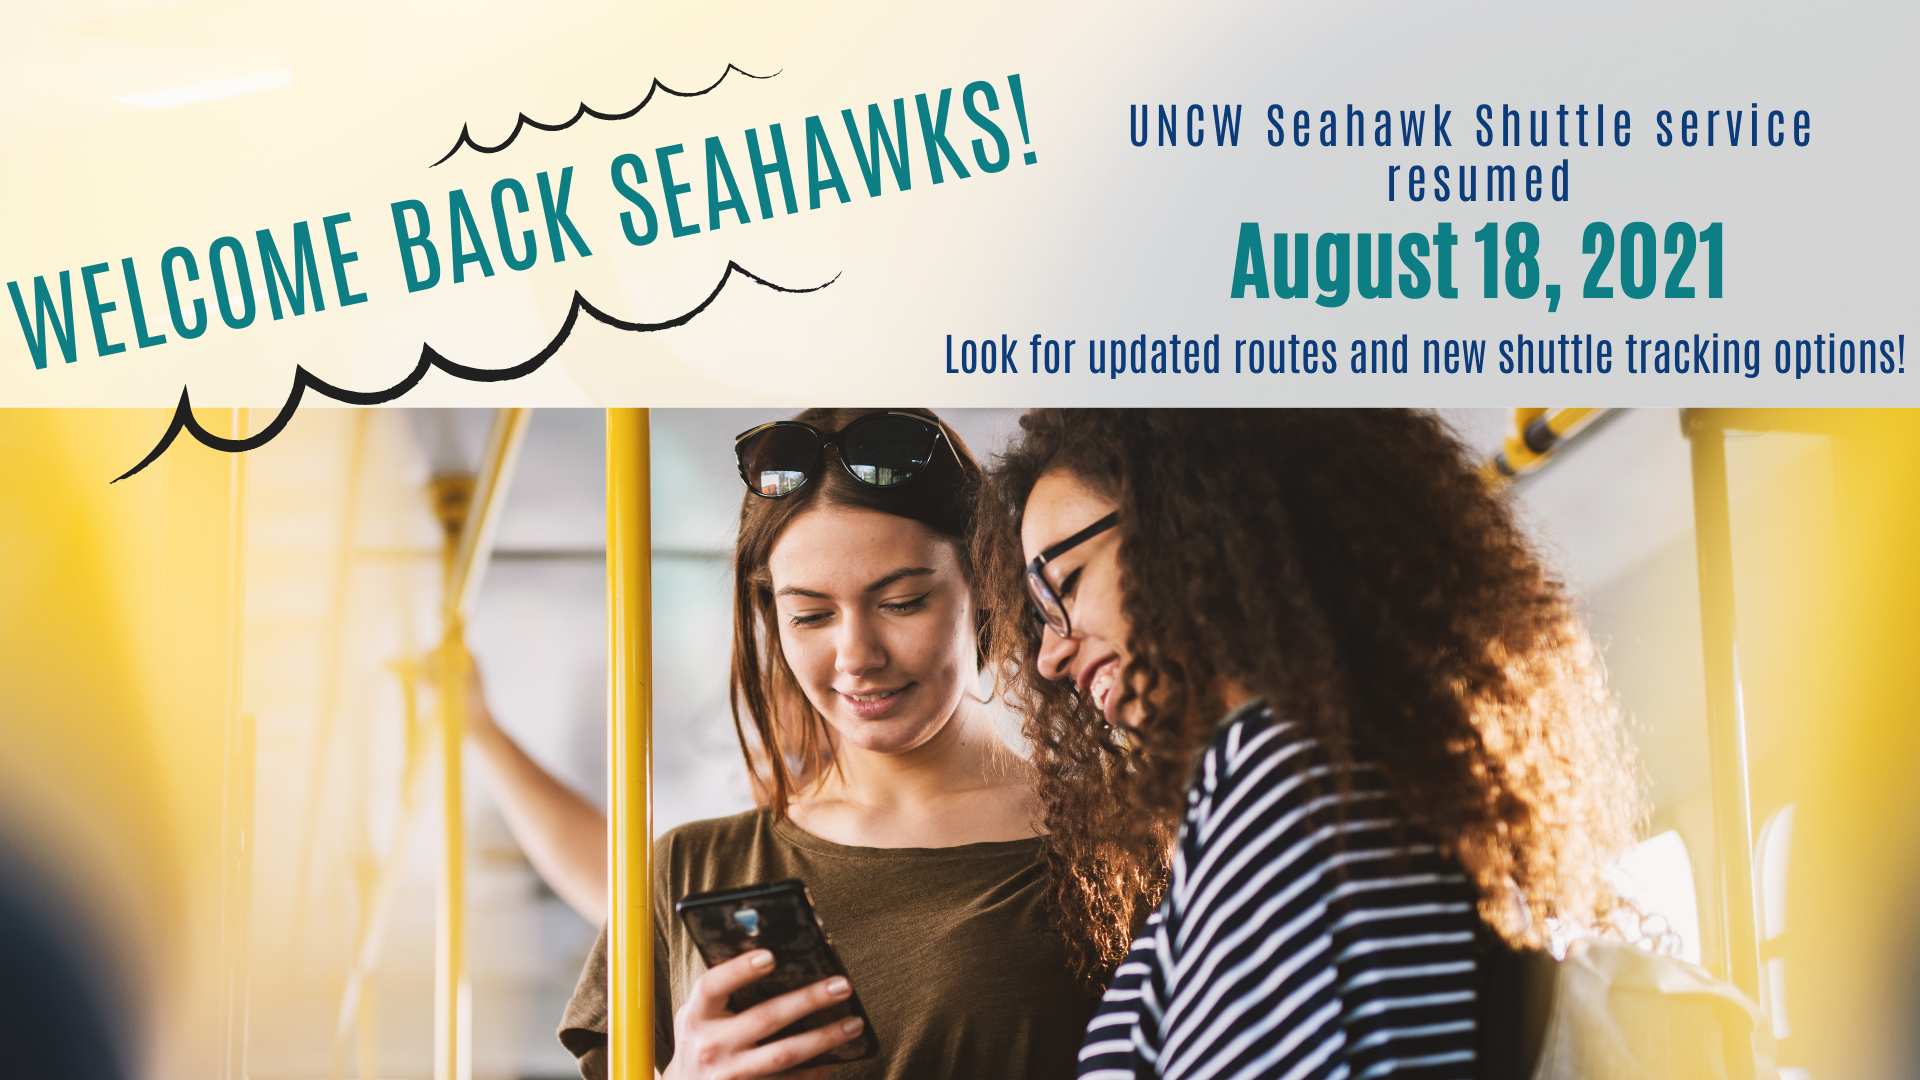 Welcome back Seahawks! UNCW Shuttle Service resumed August 18, 2021. Two women on a bus look at a phone together. They're both smiling.